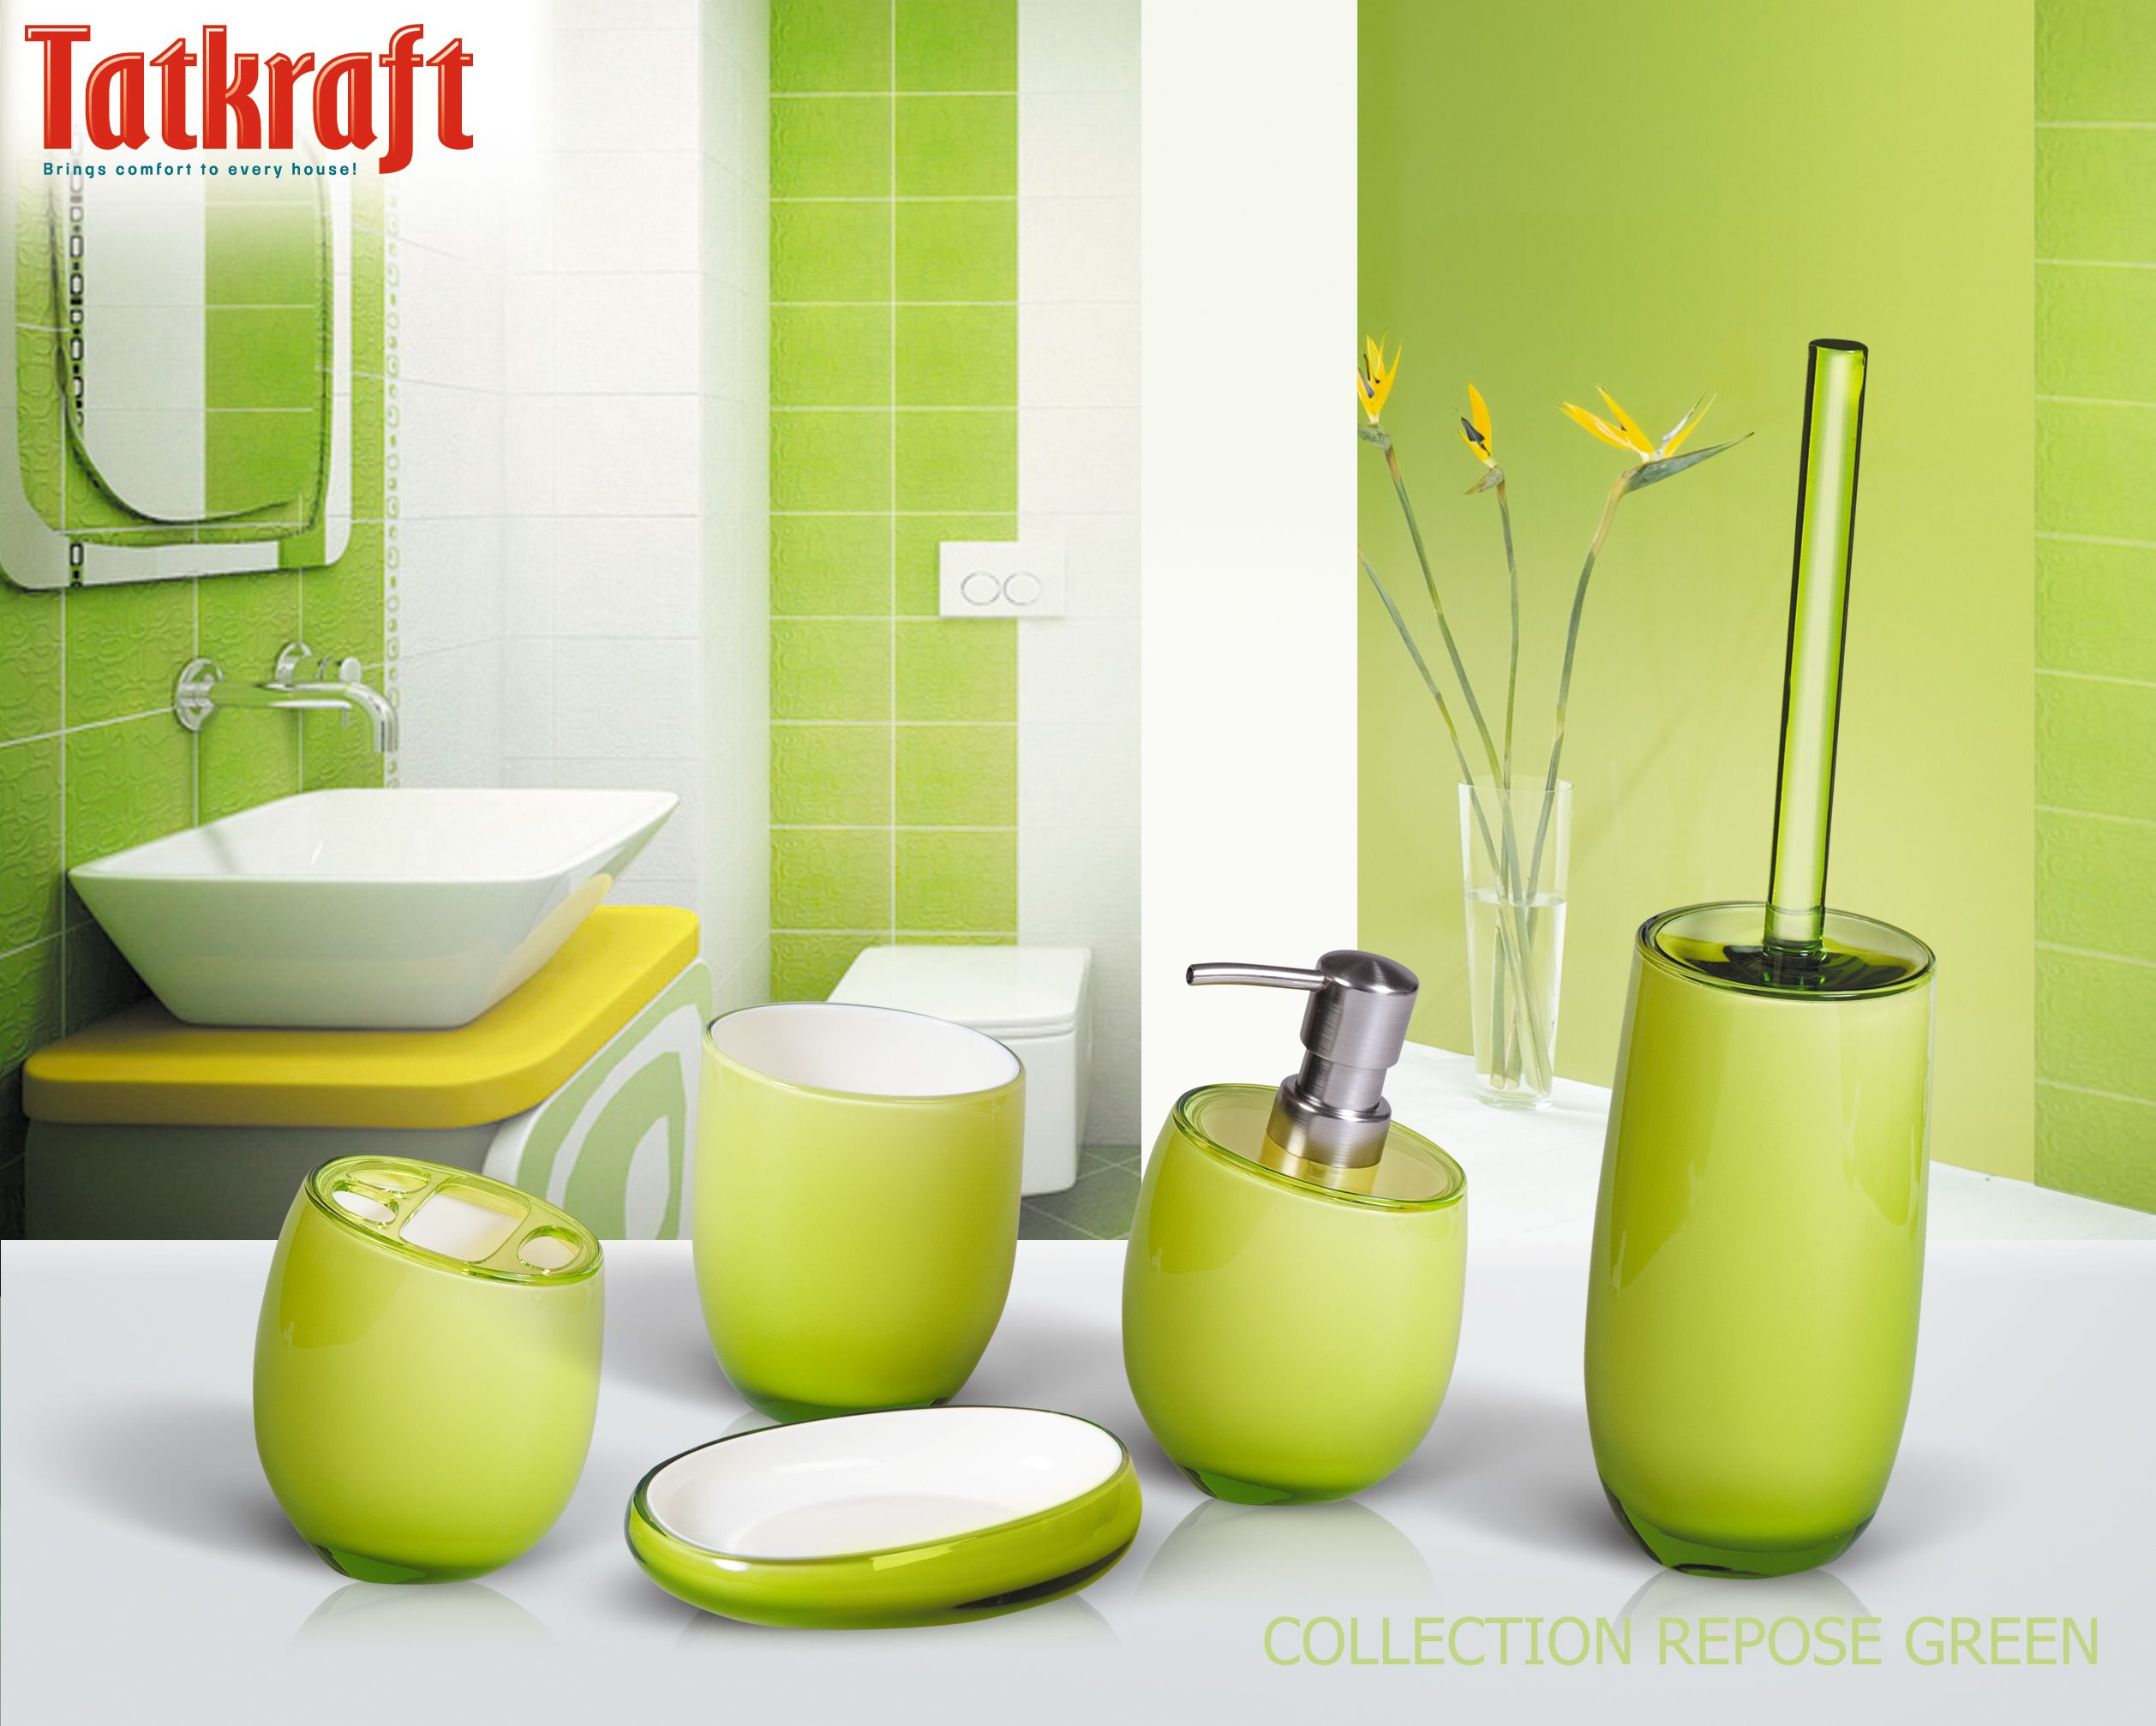 Collection Repose Green From Tatkraft Amazon Uk Acrylic